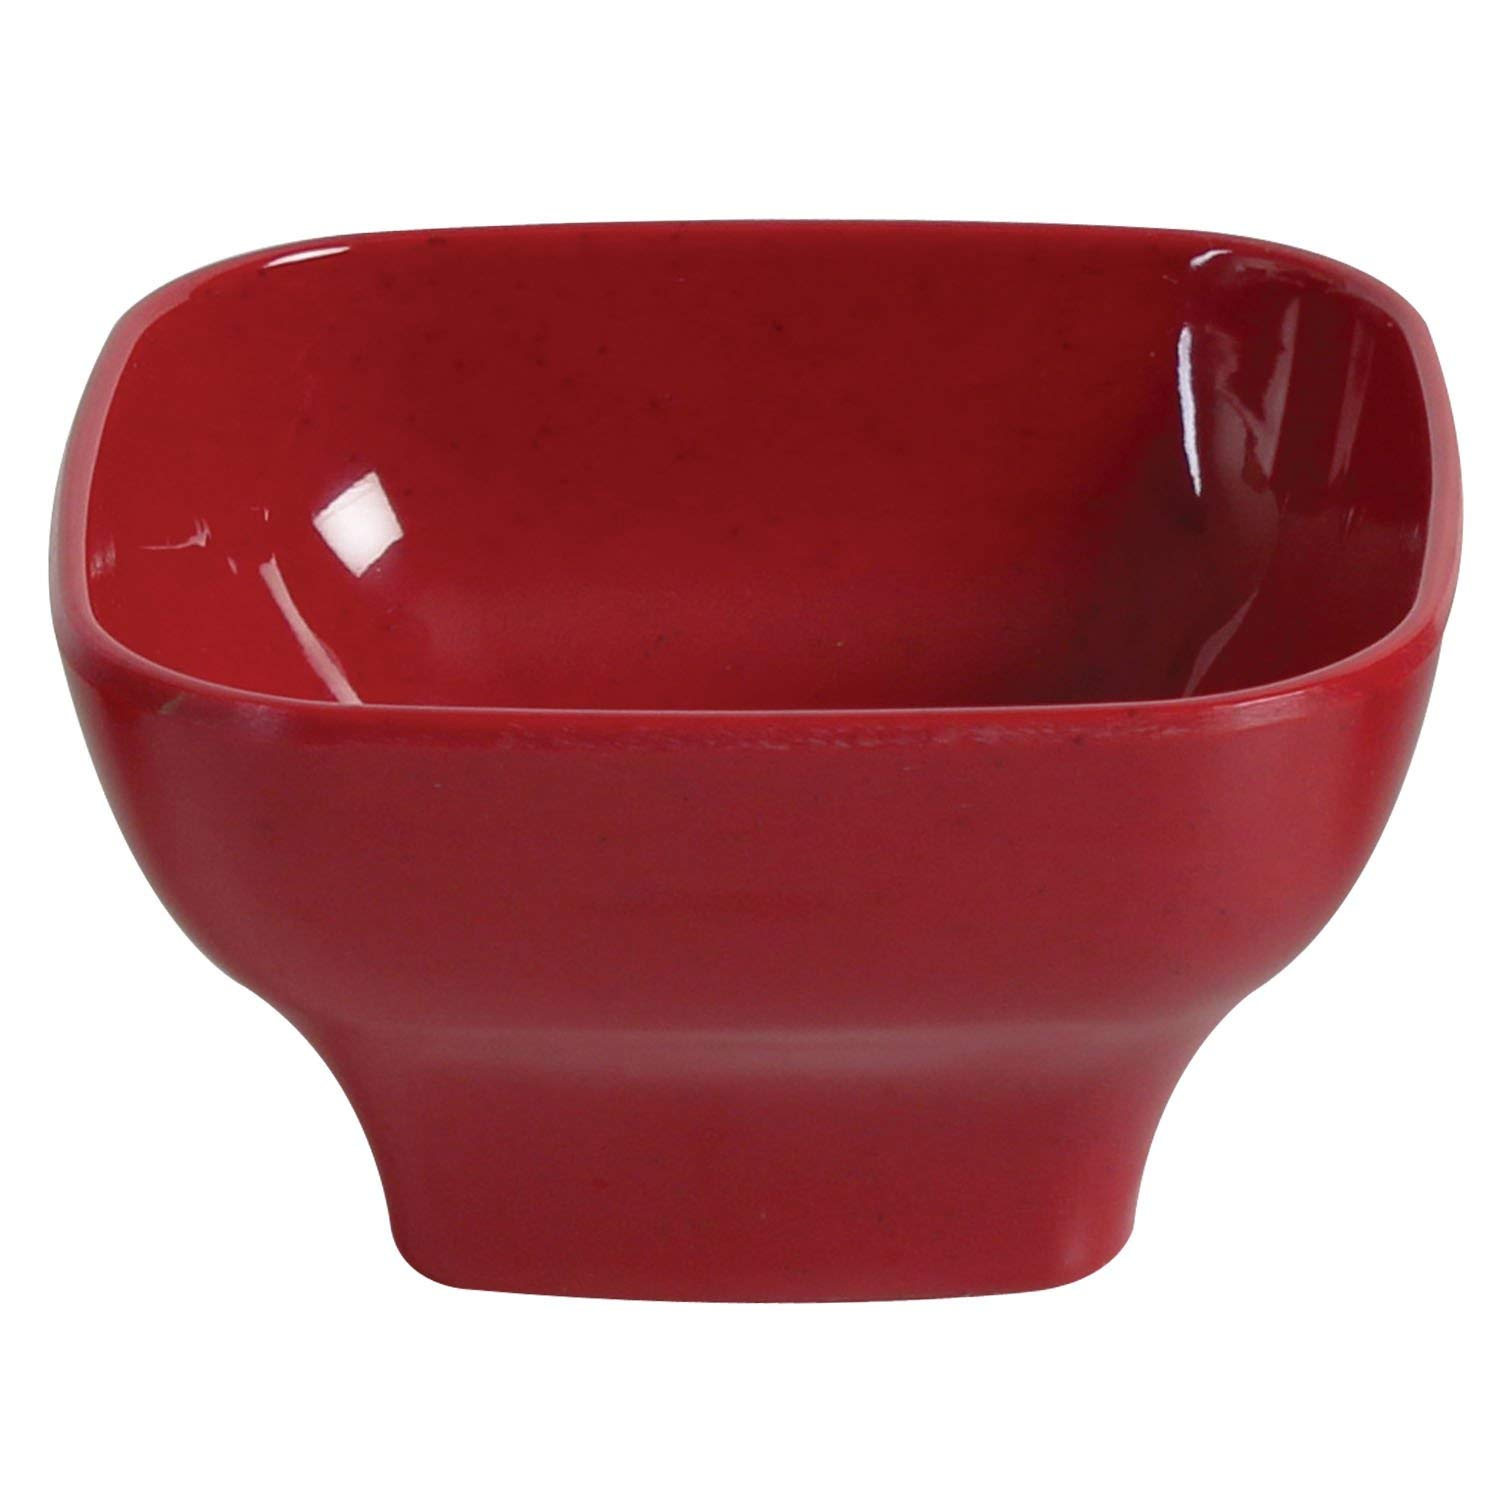 Global Goodwill Jazz Series 1-Piece Round Square Bowl, 4-3/4 by 4-3/4-Inch, 14-Ounce, Jazz Red